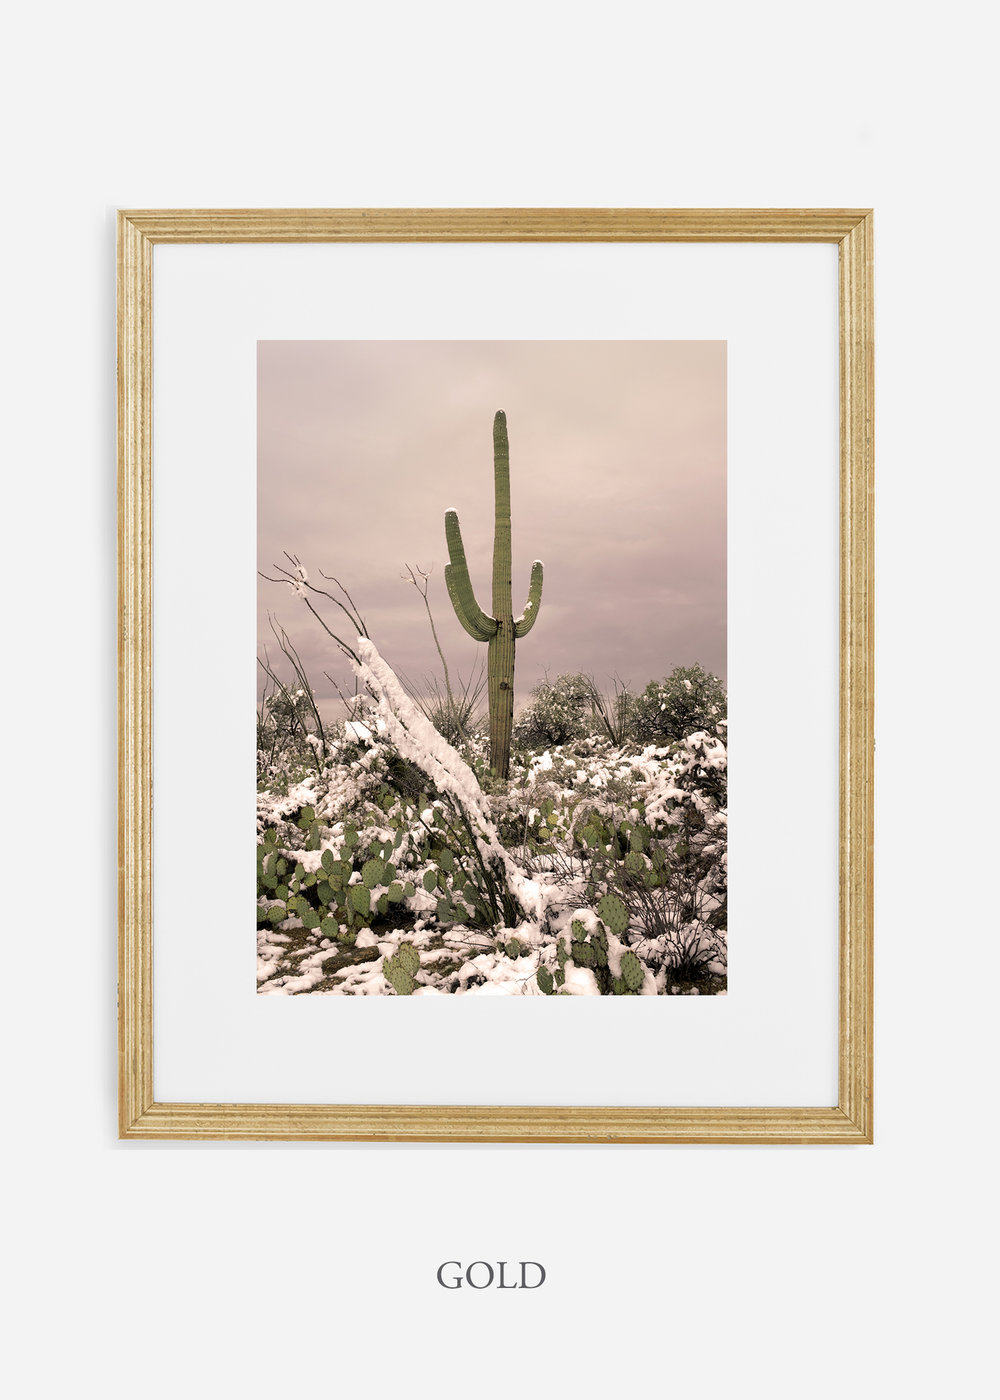 goldframe-saguaroNo.4-wildercalifornia-art-wallart-cactusprint-homedecor-prints-arizona-botanical-artwork-interiordesign.jpg